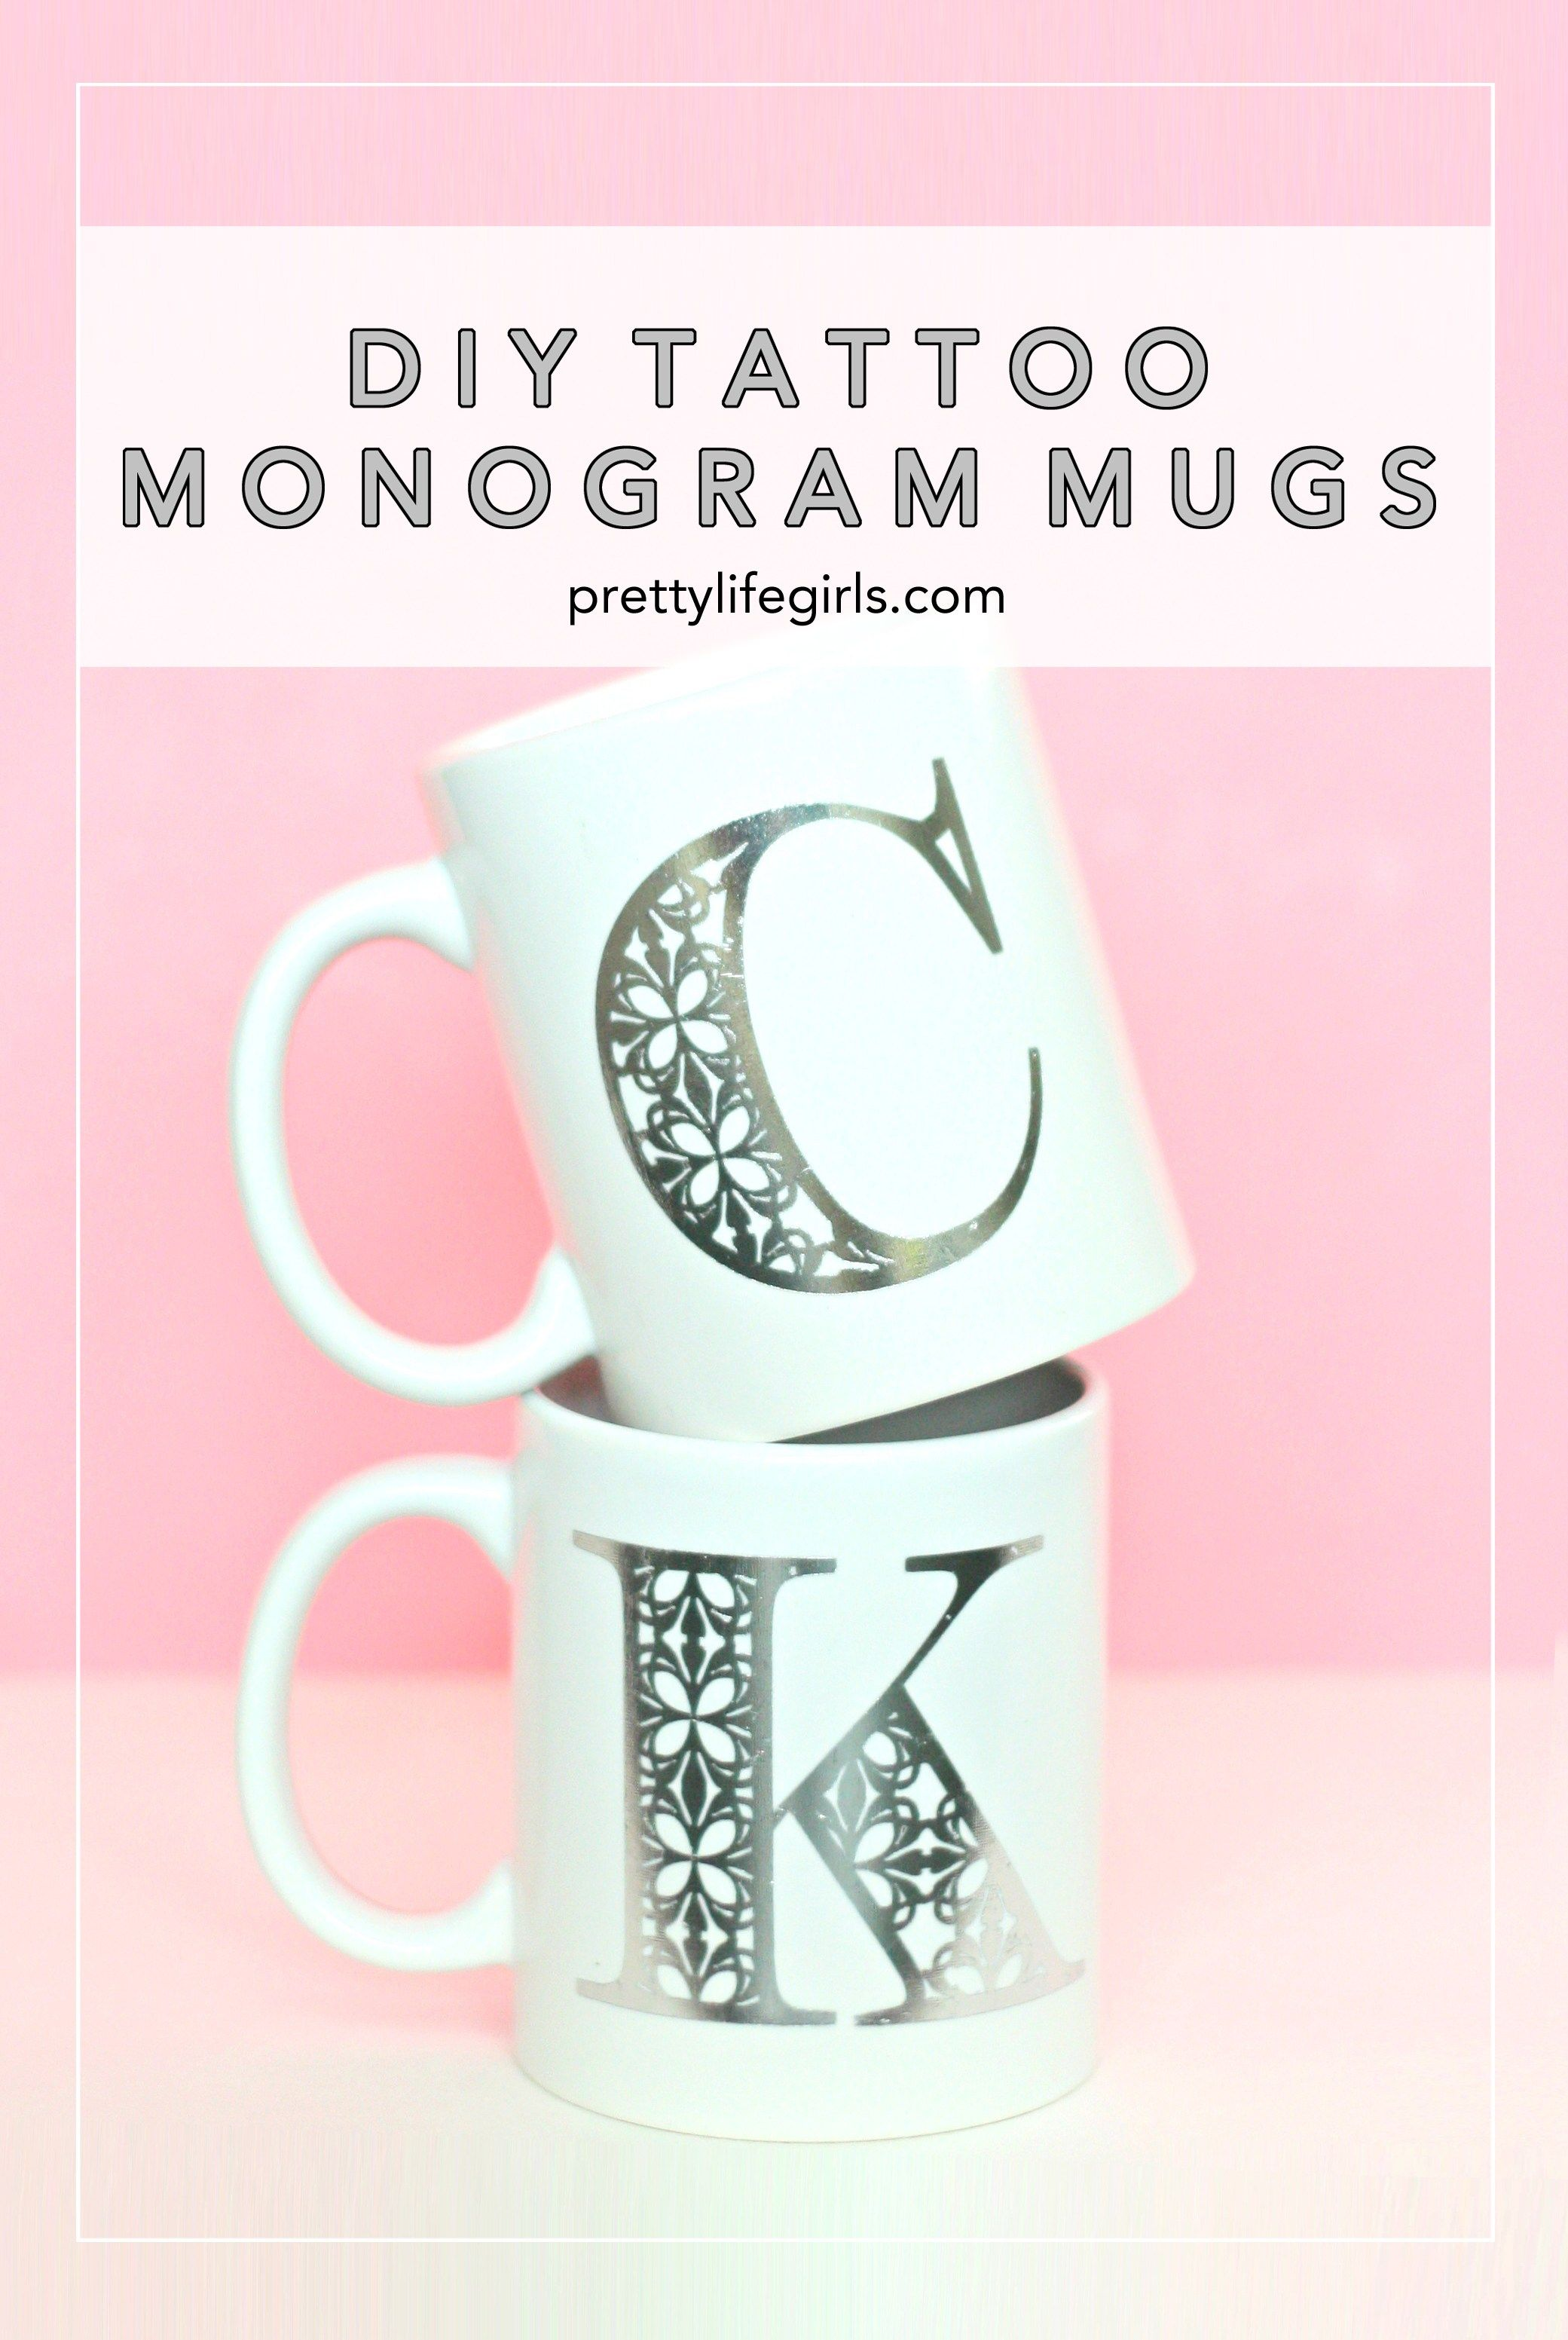 Diy Tattoo Monogram Mugs Diy Tattoo Diy Mugs Diy Monogram